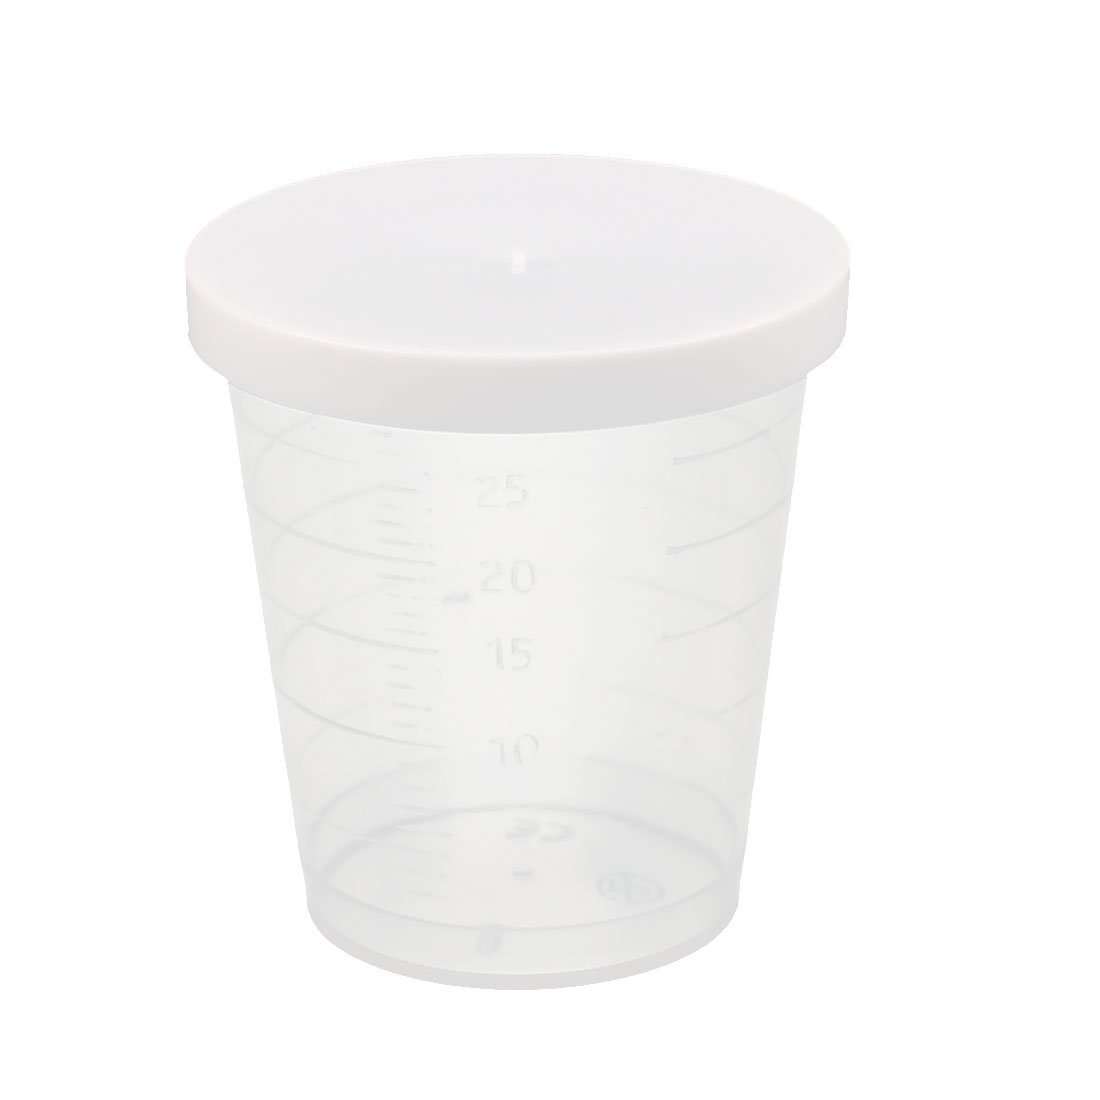 sourcingmap® 2 Pcs 30mL School Laboratory Transparent Plastic Liquid Container Measuring Cup Beaker a16082900ux0435